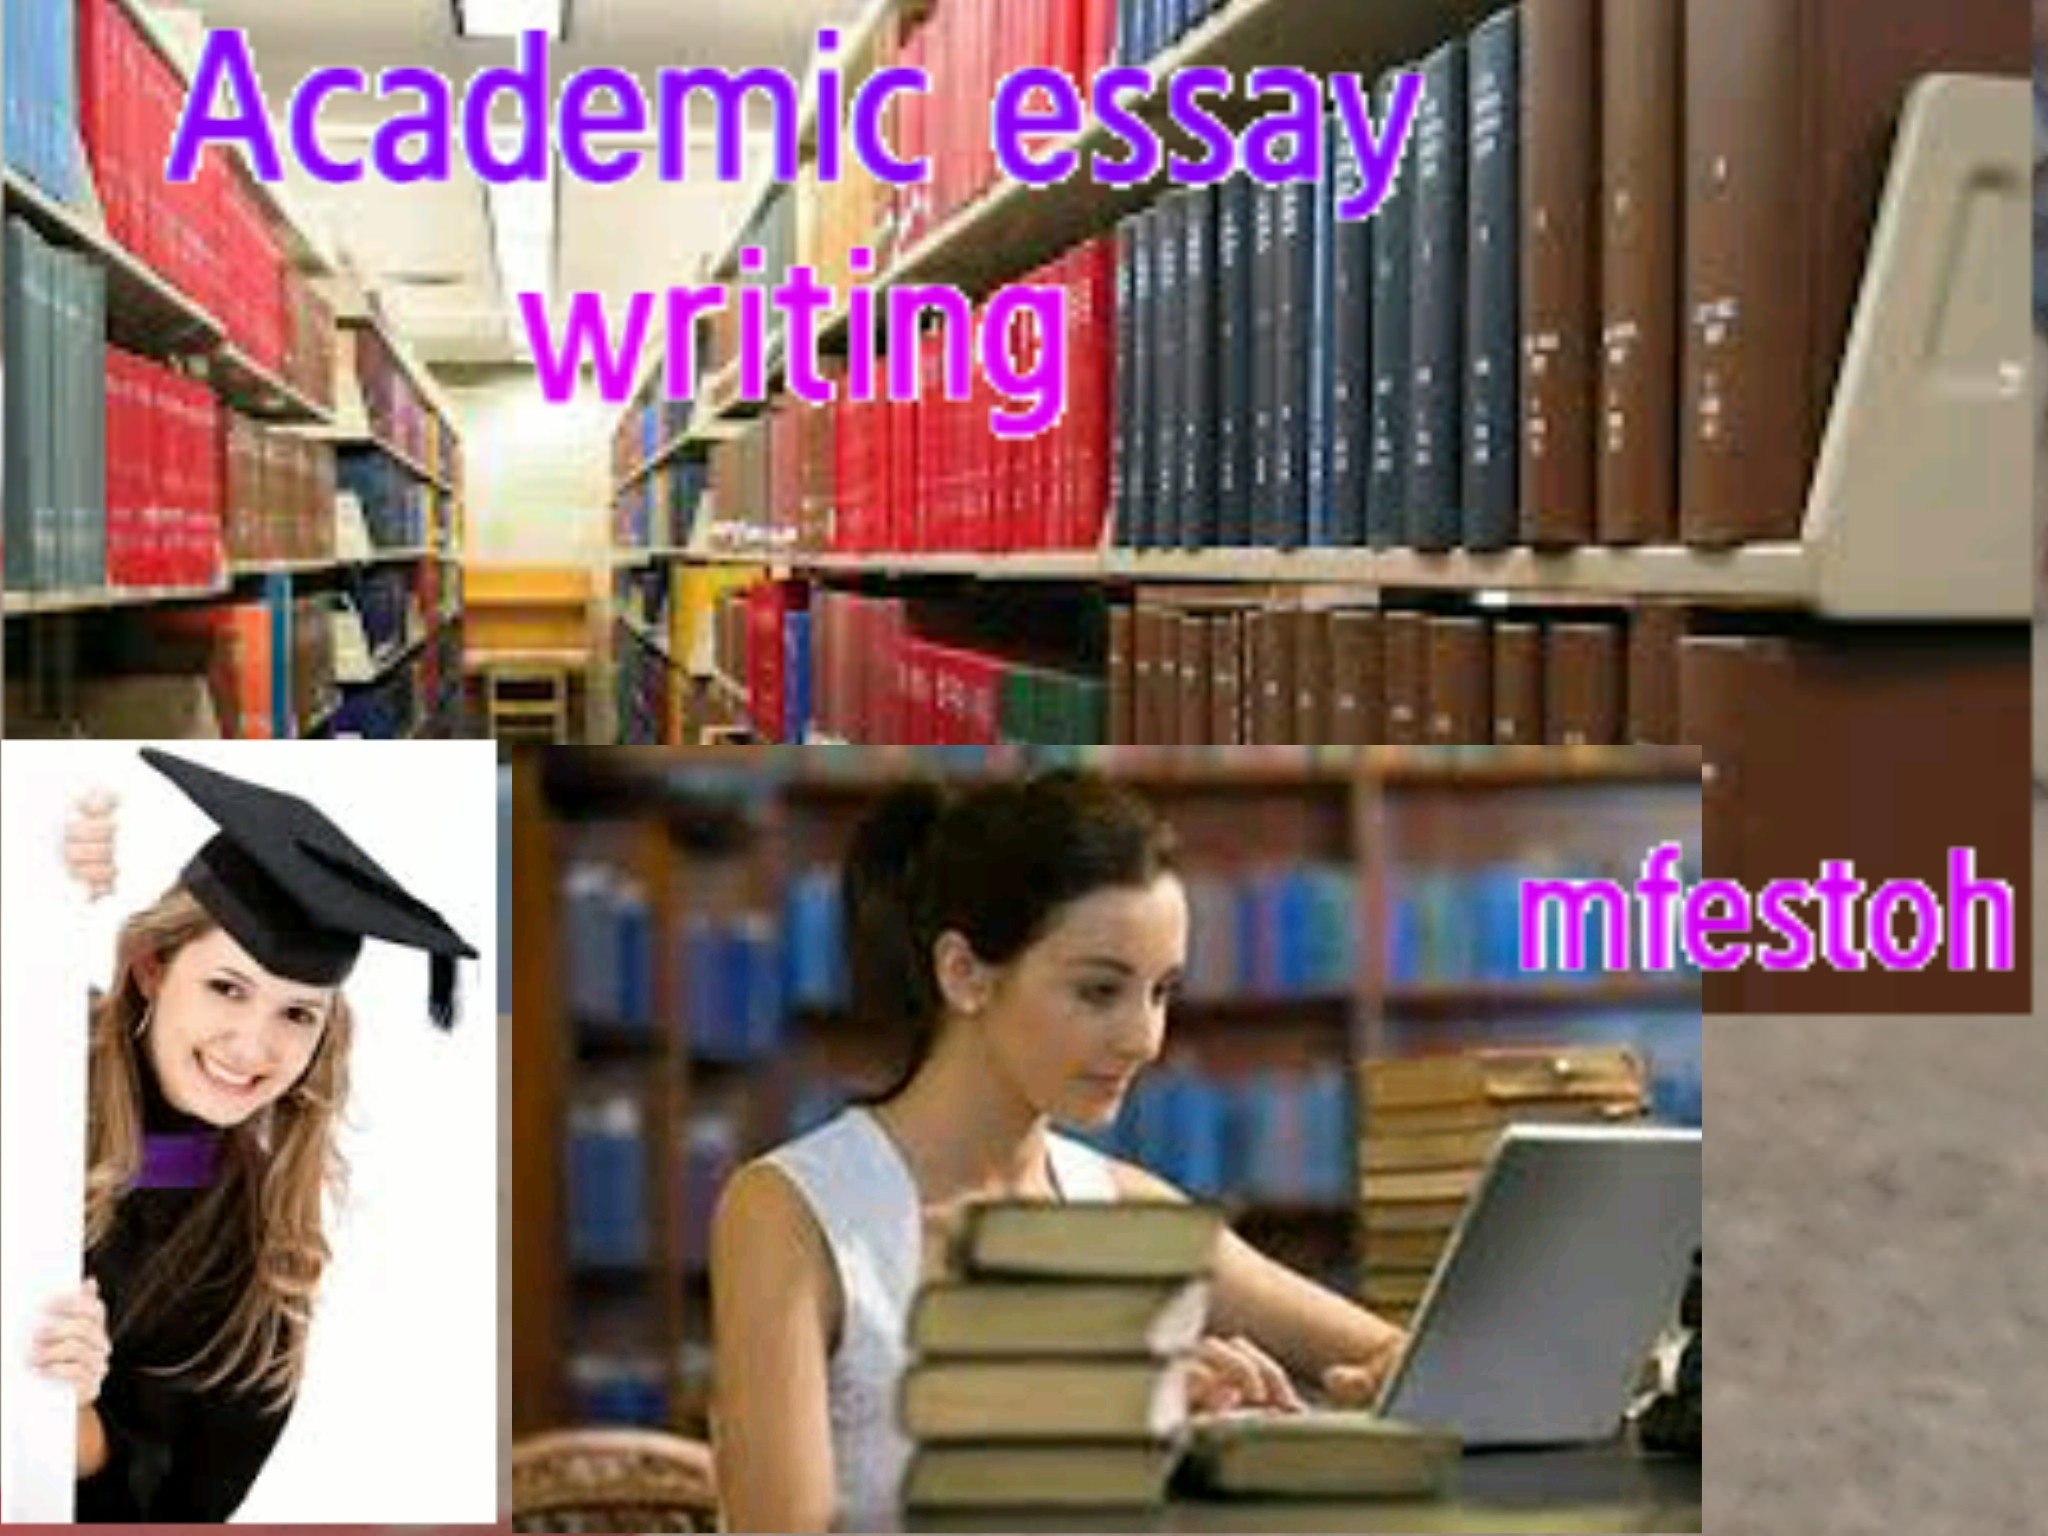 dissertation without primary research Oxbridge primary research offers an unparalleled level of support clients who are interested in a literature-based dissertation - ie without primary research.